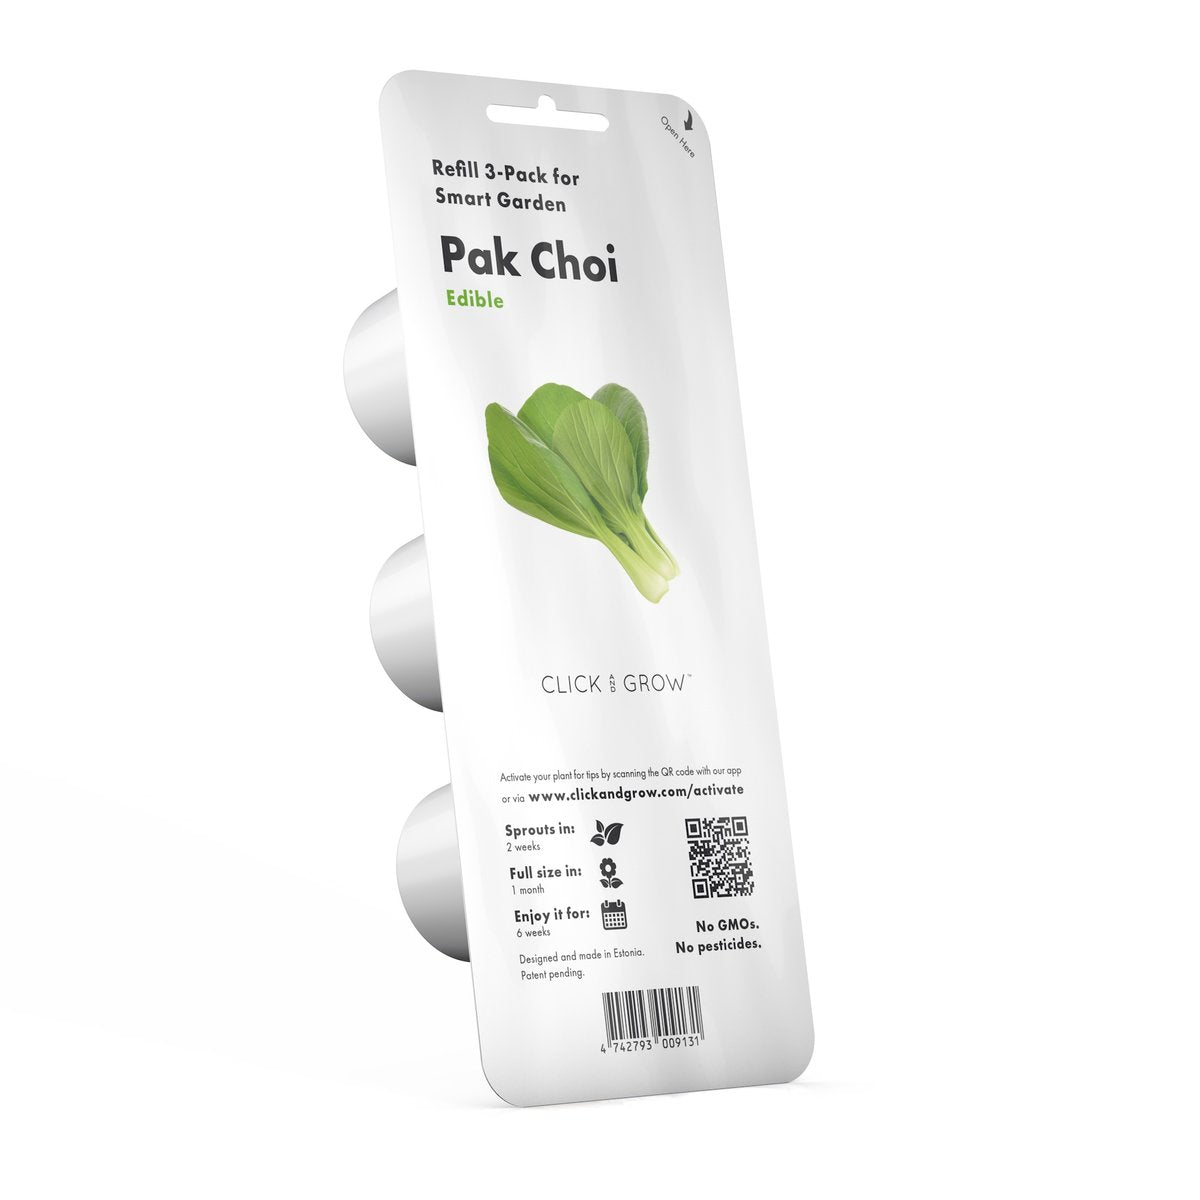 Click and Grow Refill 3-Pack - Pak Choi